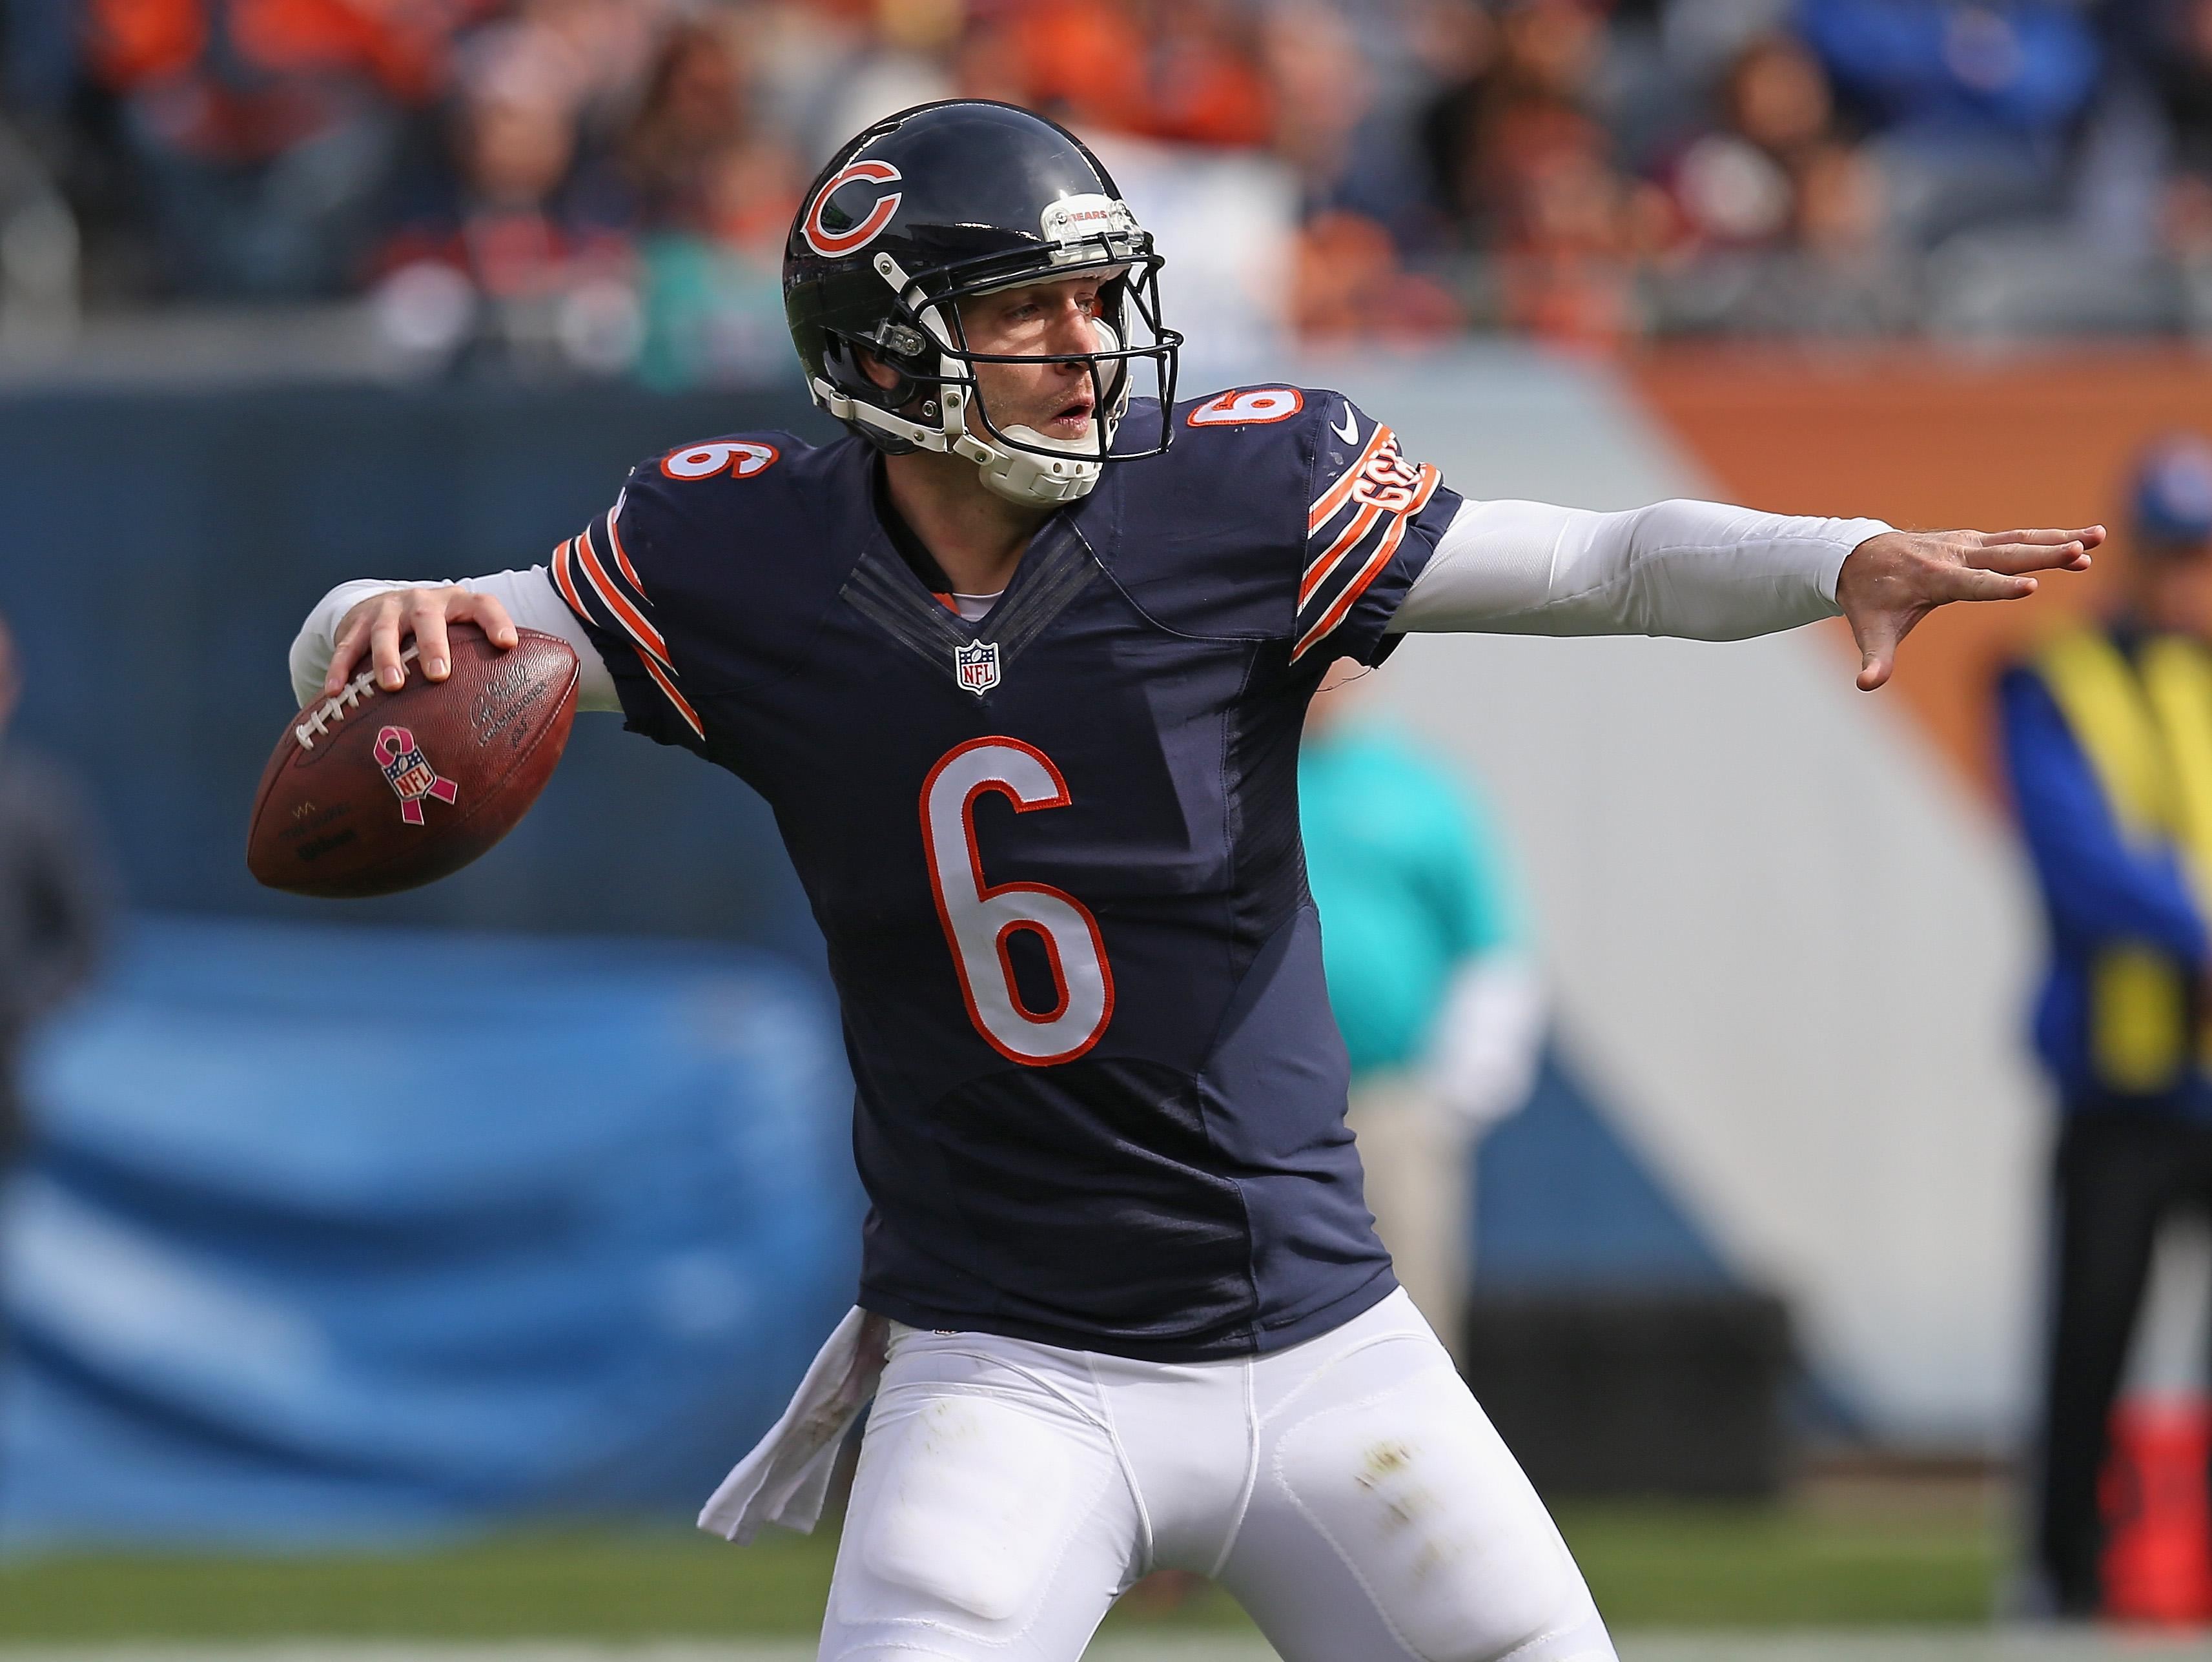 Jay Cutler Rumors: Dolphins 'Making Ground' on Contract Talks with Retired QB